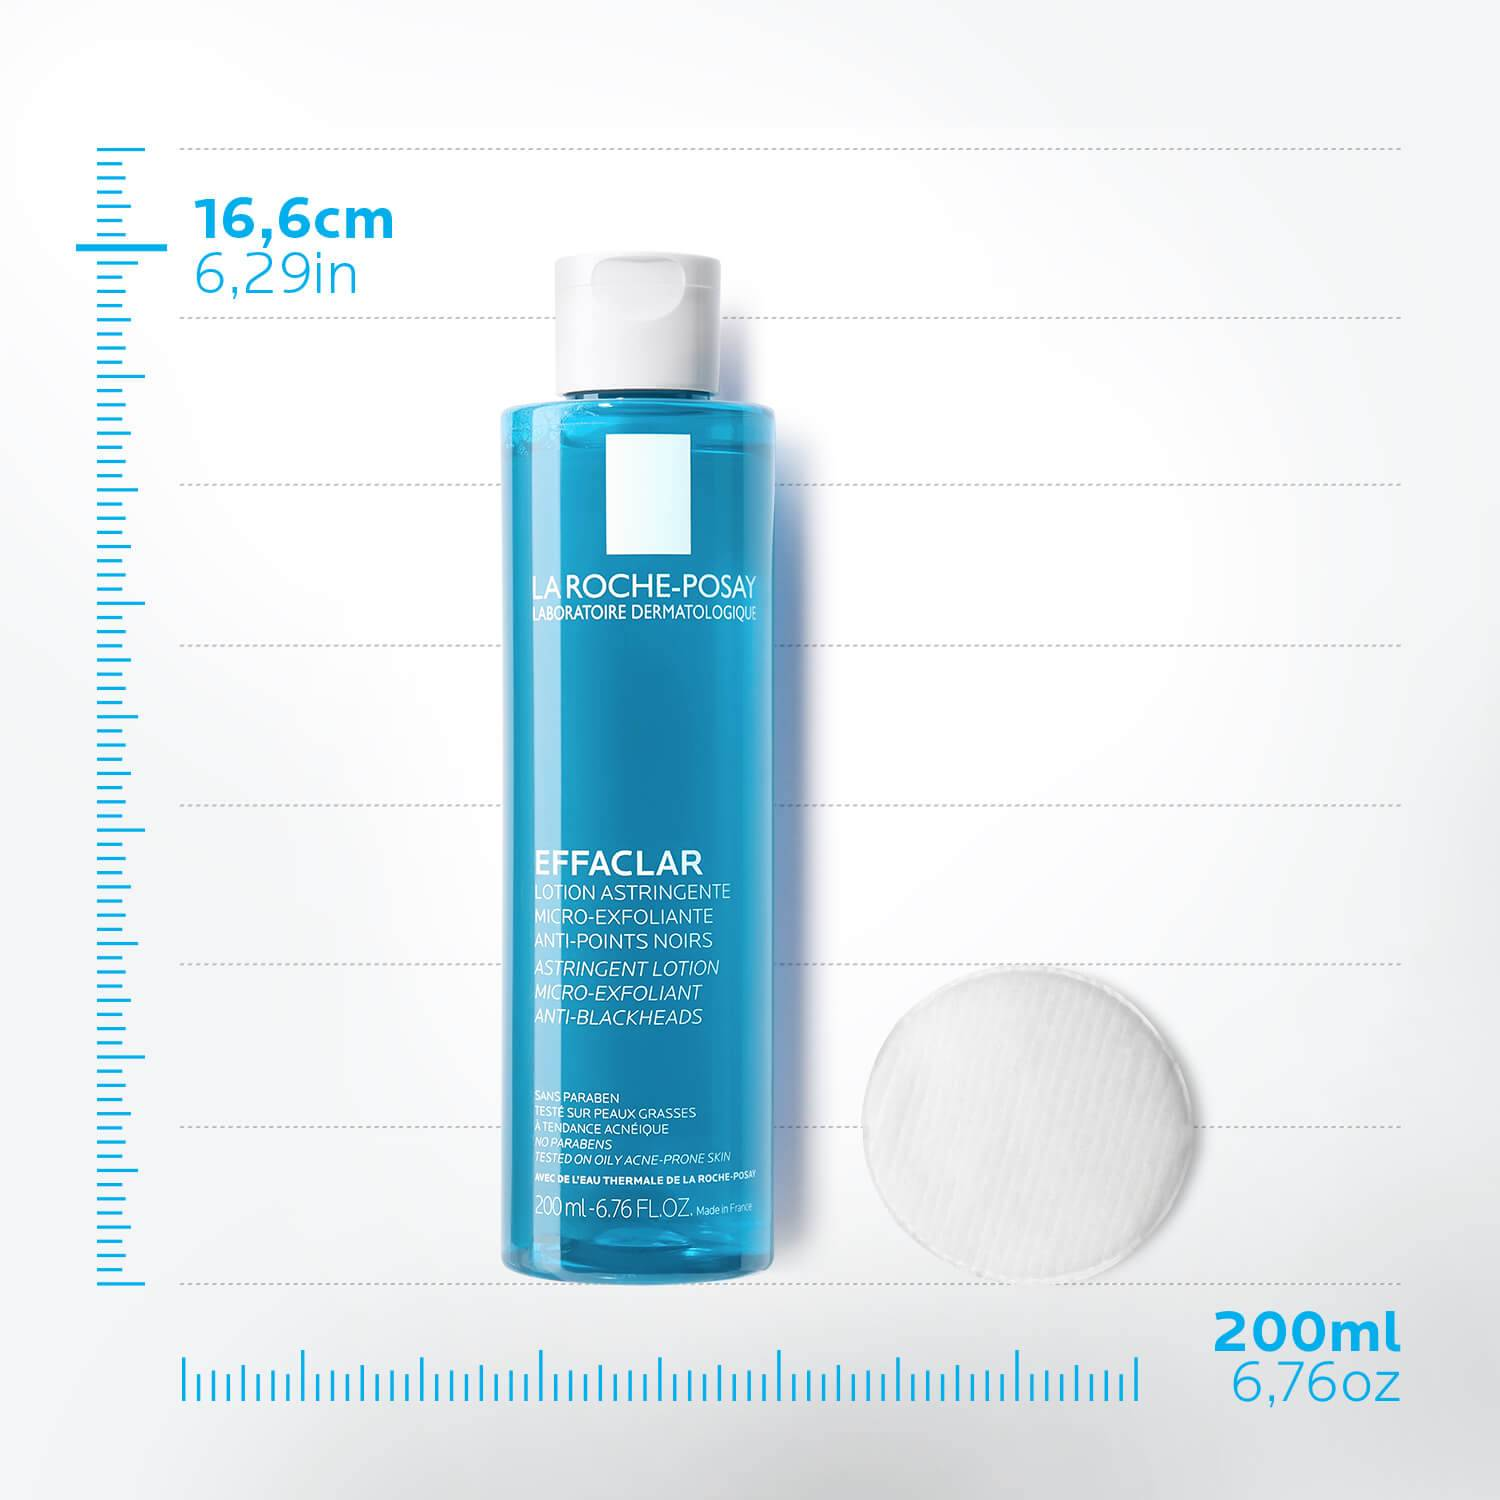 Product Page Acne Face CareEffaclar Micro Exfoliating Astringent | La Roche Posay